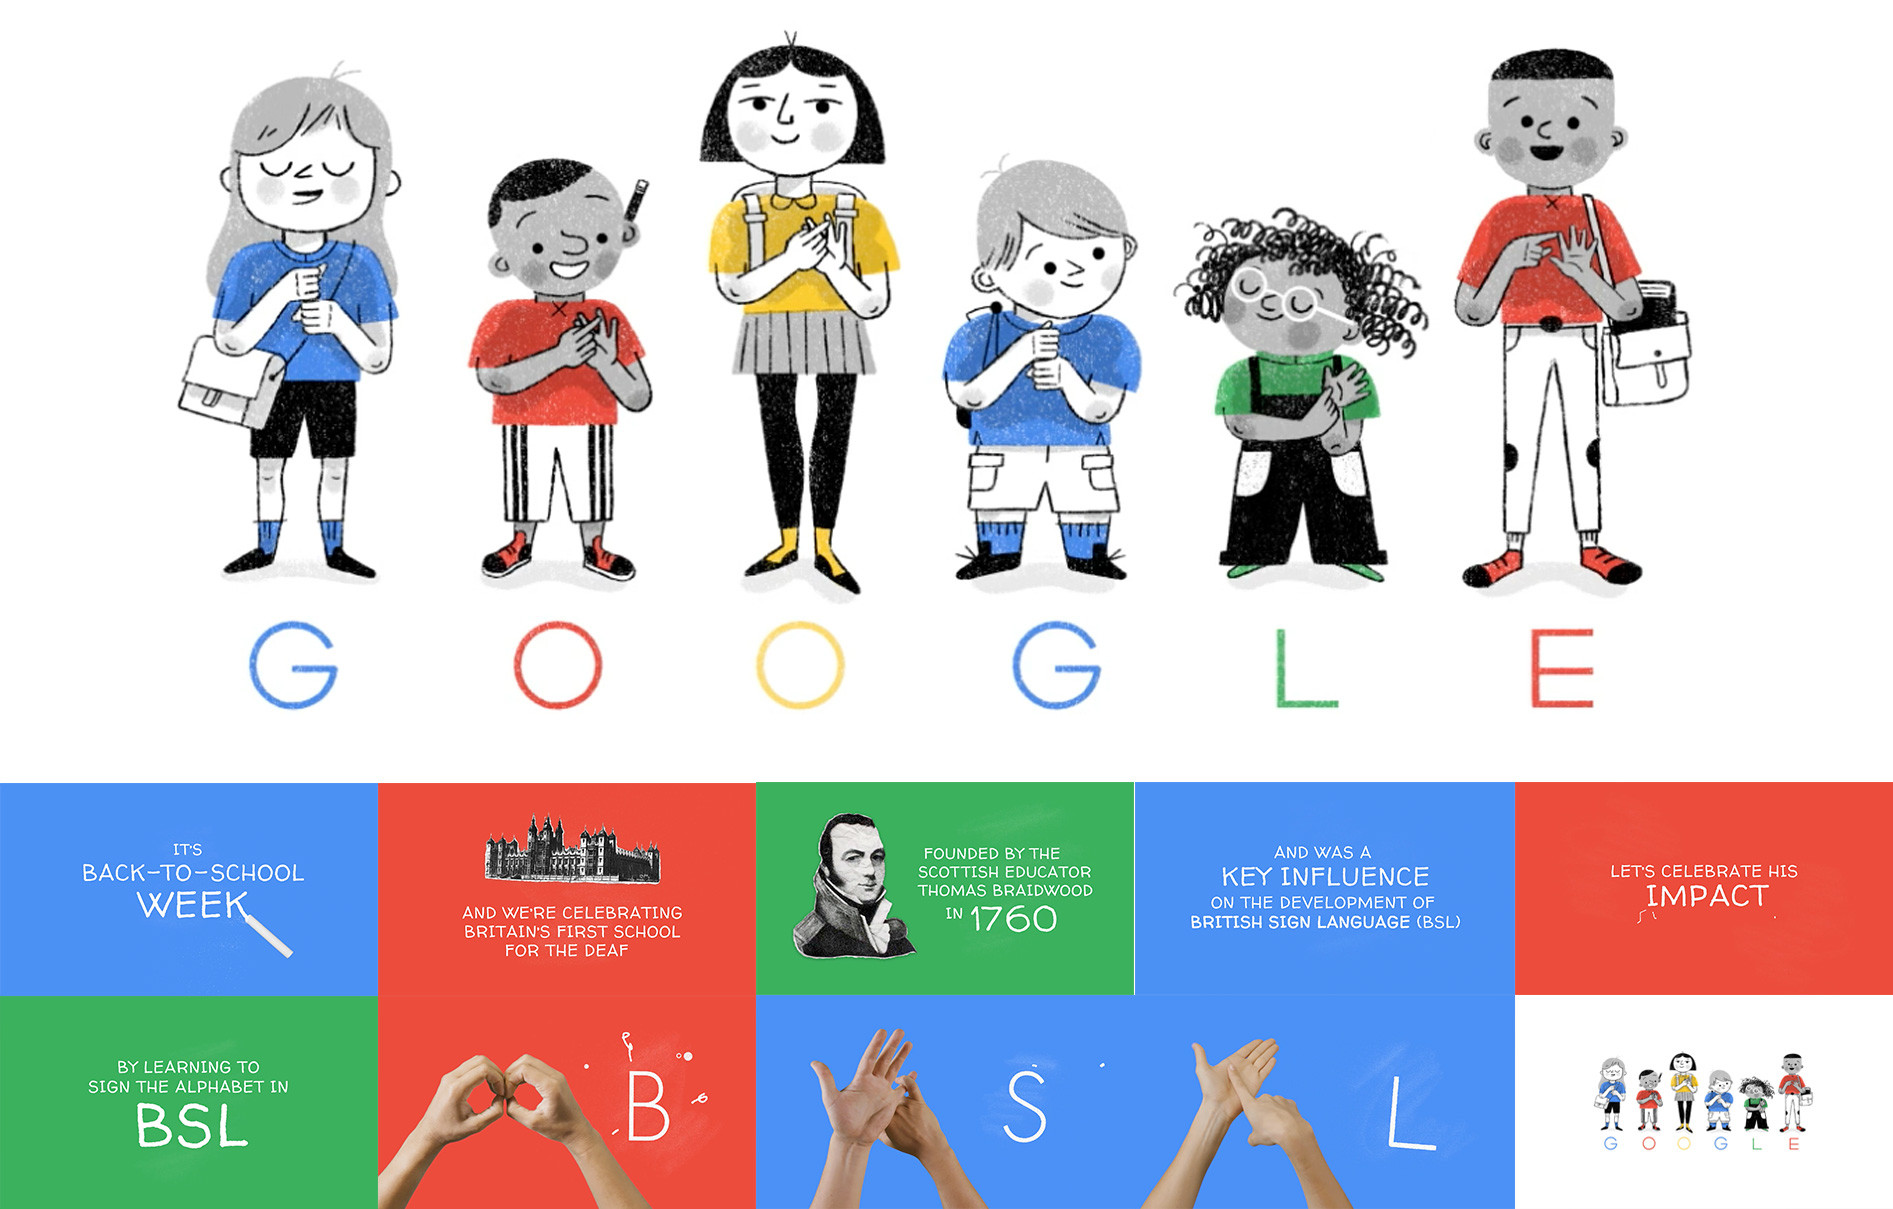 Google Doodle and video